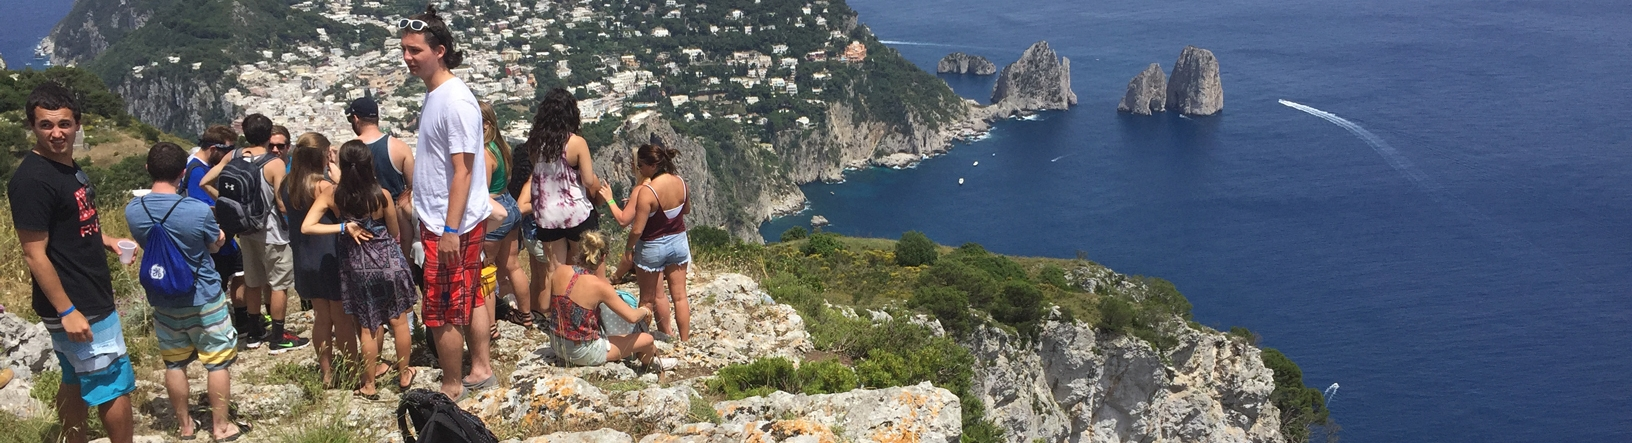 Study abroad students standing cliff side over looking the ocean with Temple flag